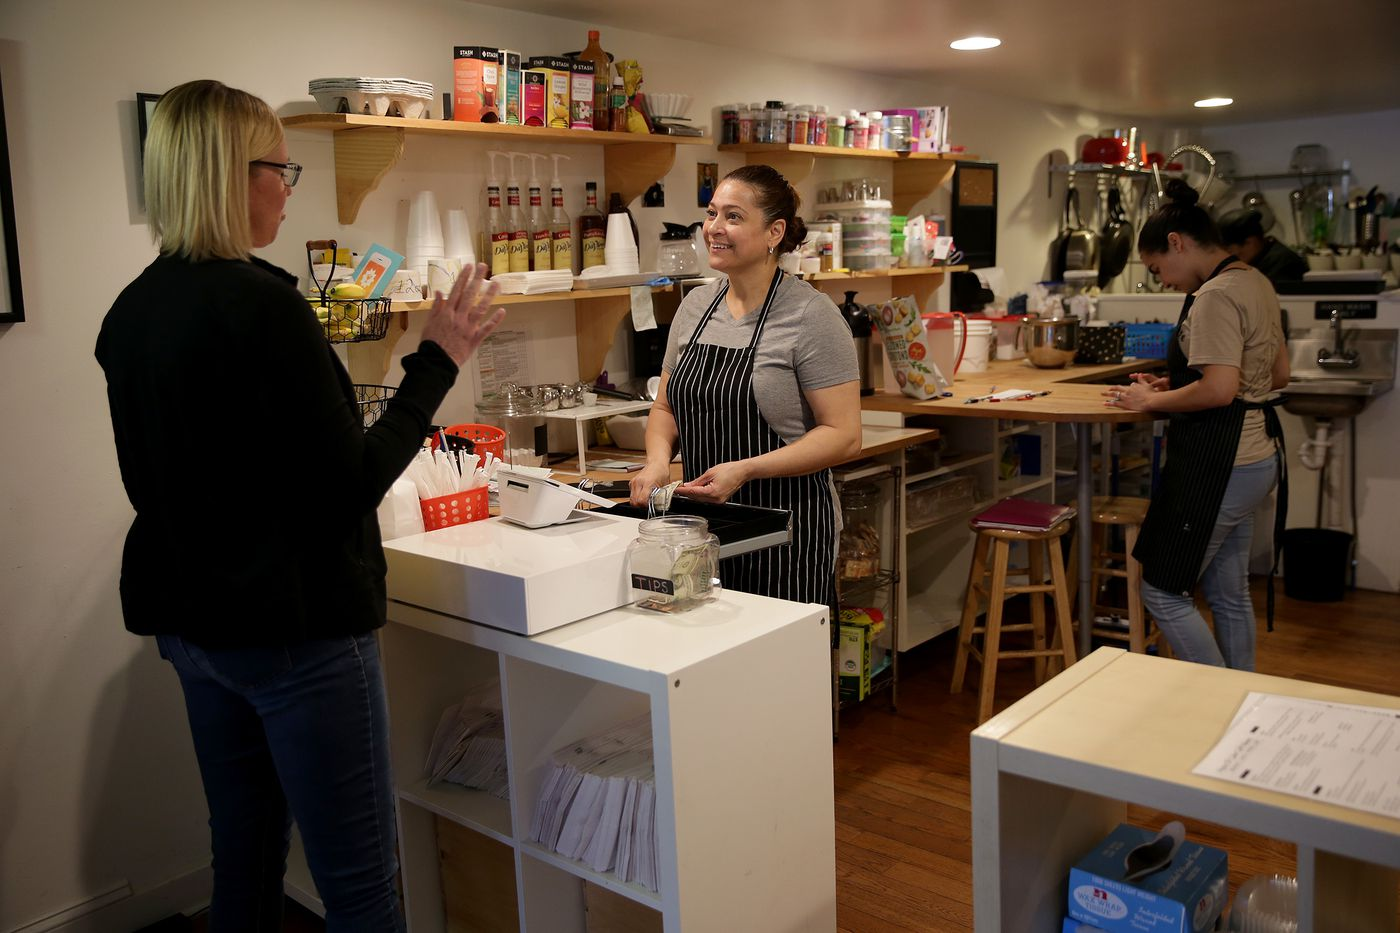 Lunch spots boom as big business brings employees to Camden